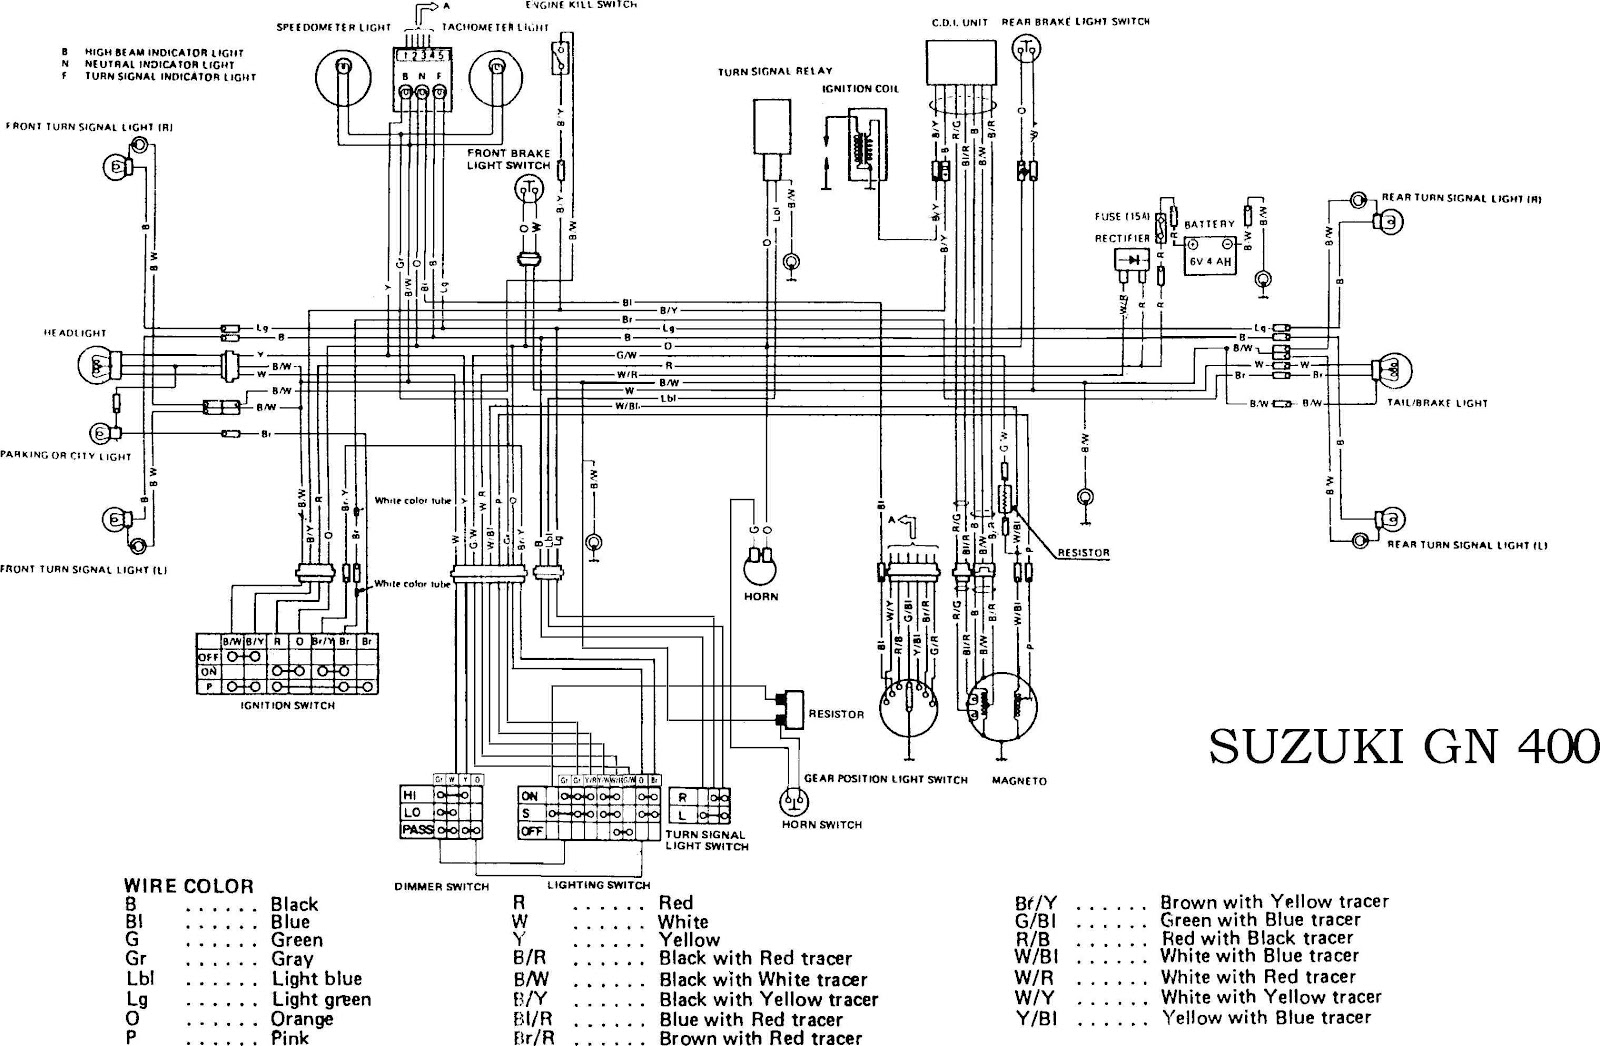 Suzuki Gsx R600 Srad Motorcycle 1998 further Kawasaki Kfx 80 Wiring Diagram as well Honda Gcv160 Parts Diagram besides Kohler Carburetor Parts Diagram besides 650 Yamaha Motorcycle Wiring Diagrams. on 450 john deere kawasaki engine